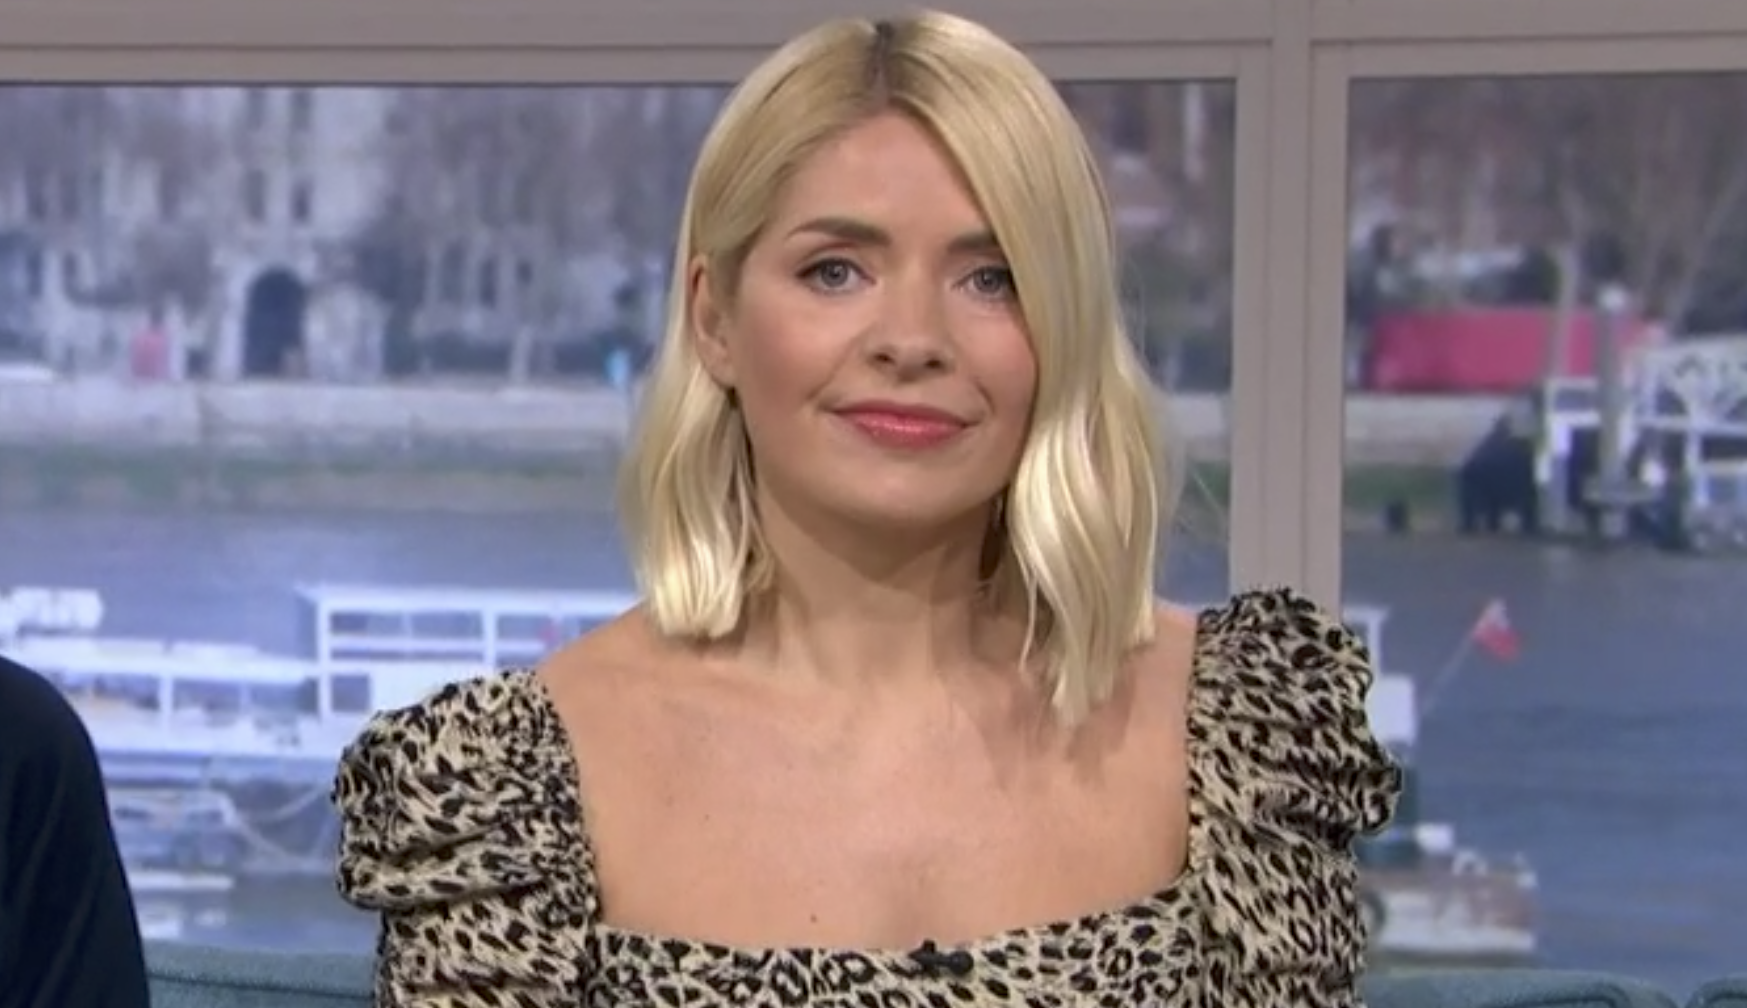 This Morning viewers go wild for Holly Willoughby's leopard-print dress